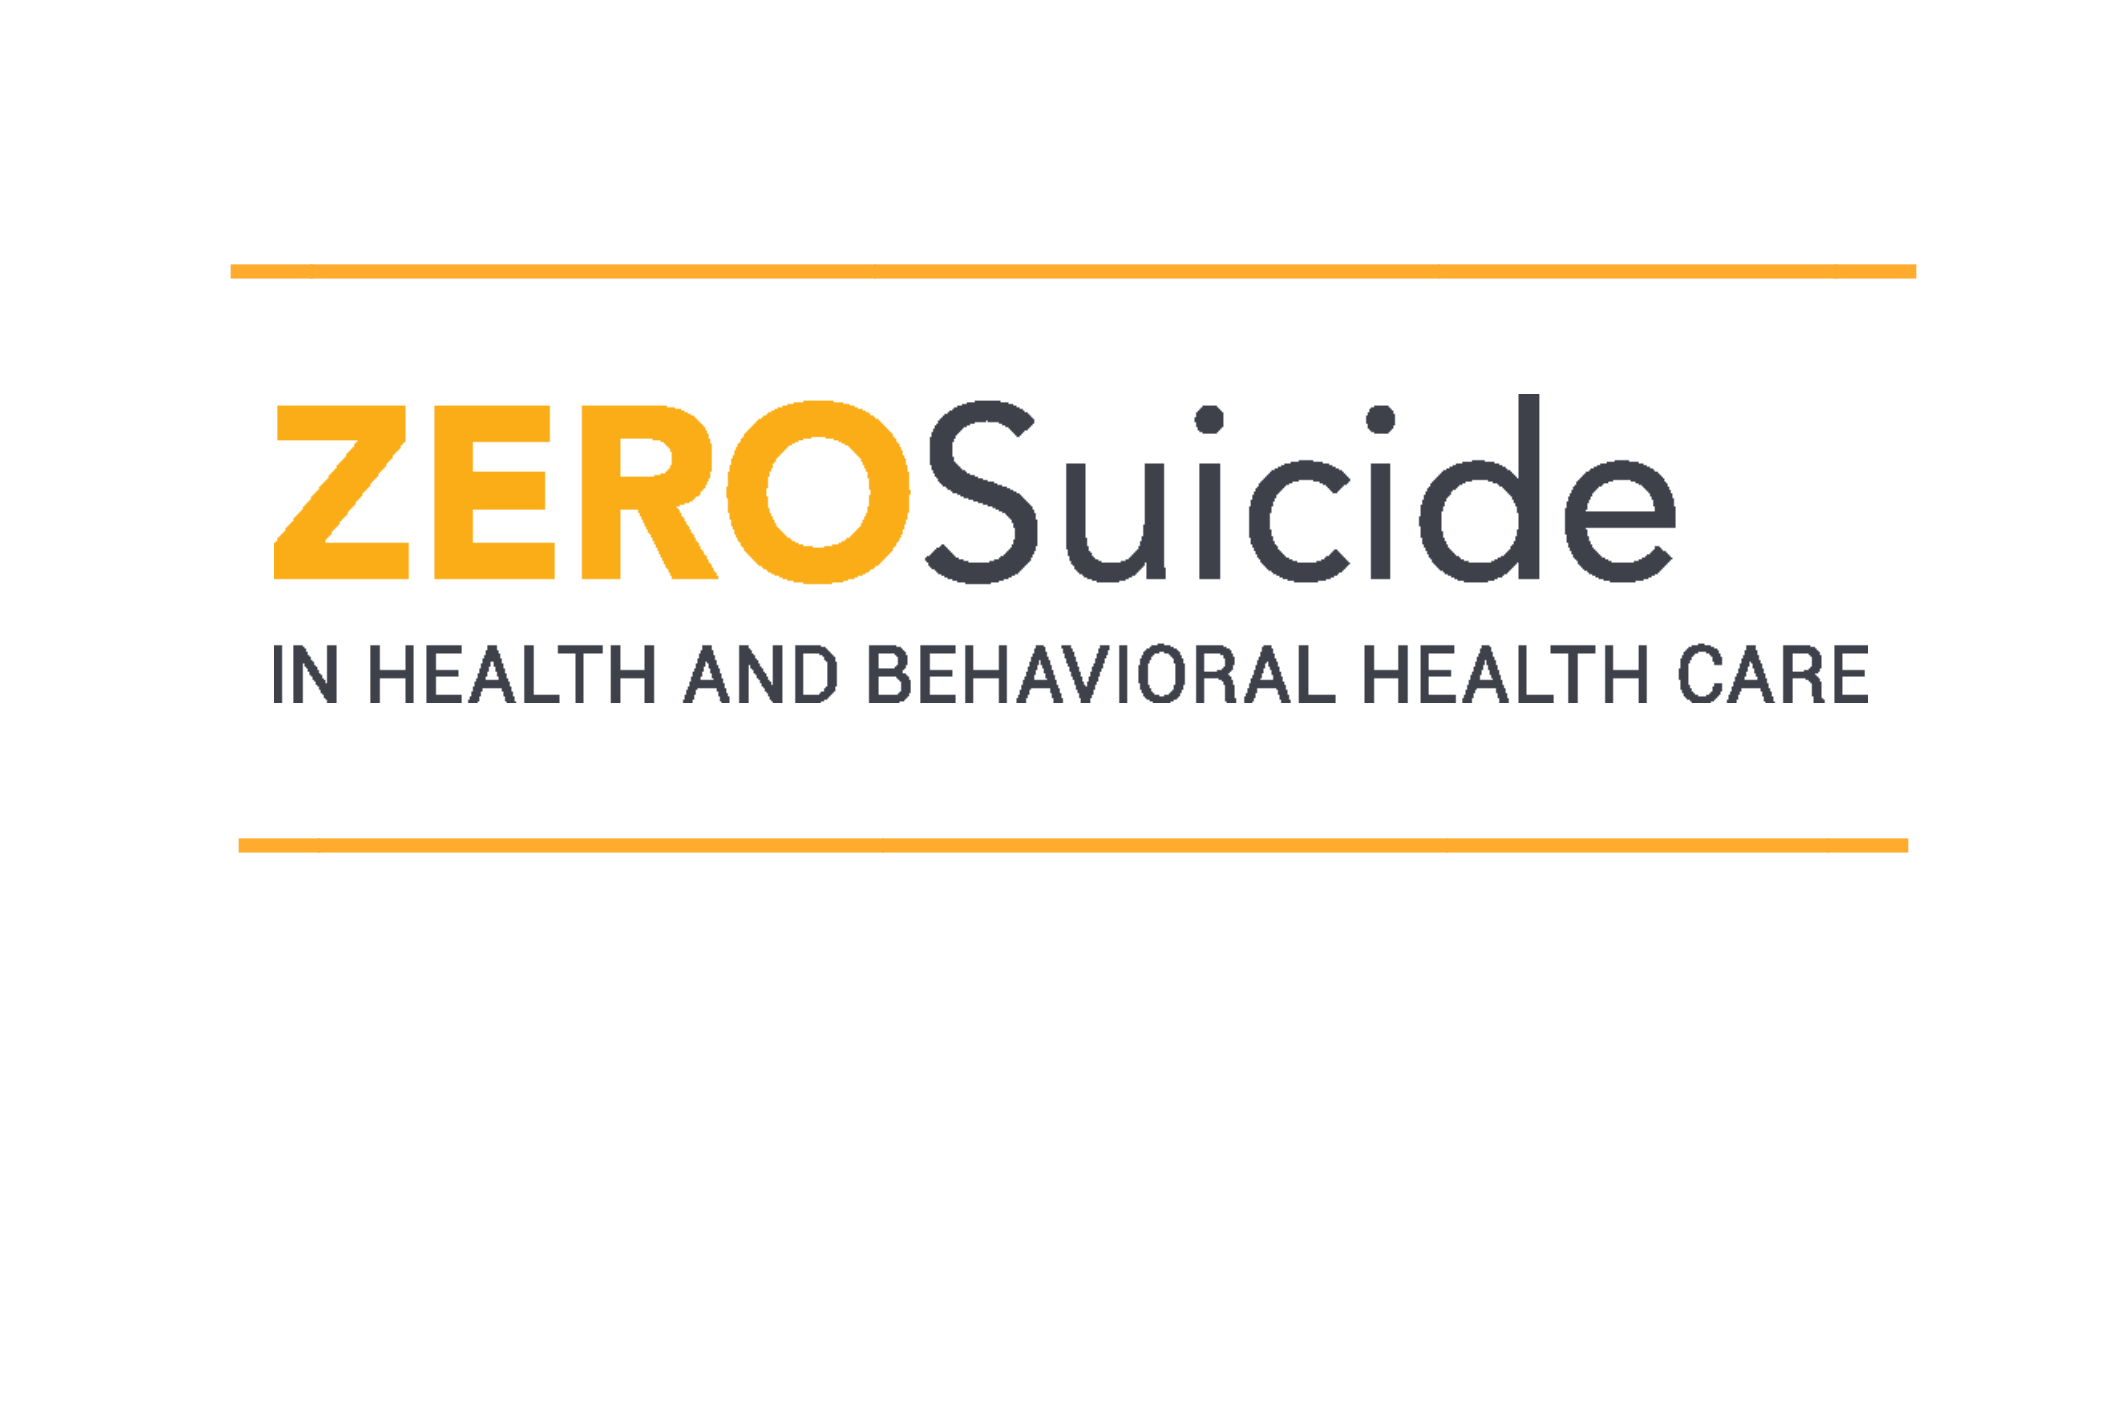 Implementing Zero Suicide in Health Care